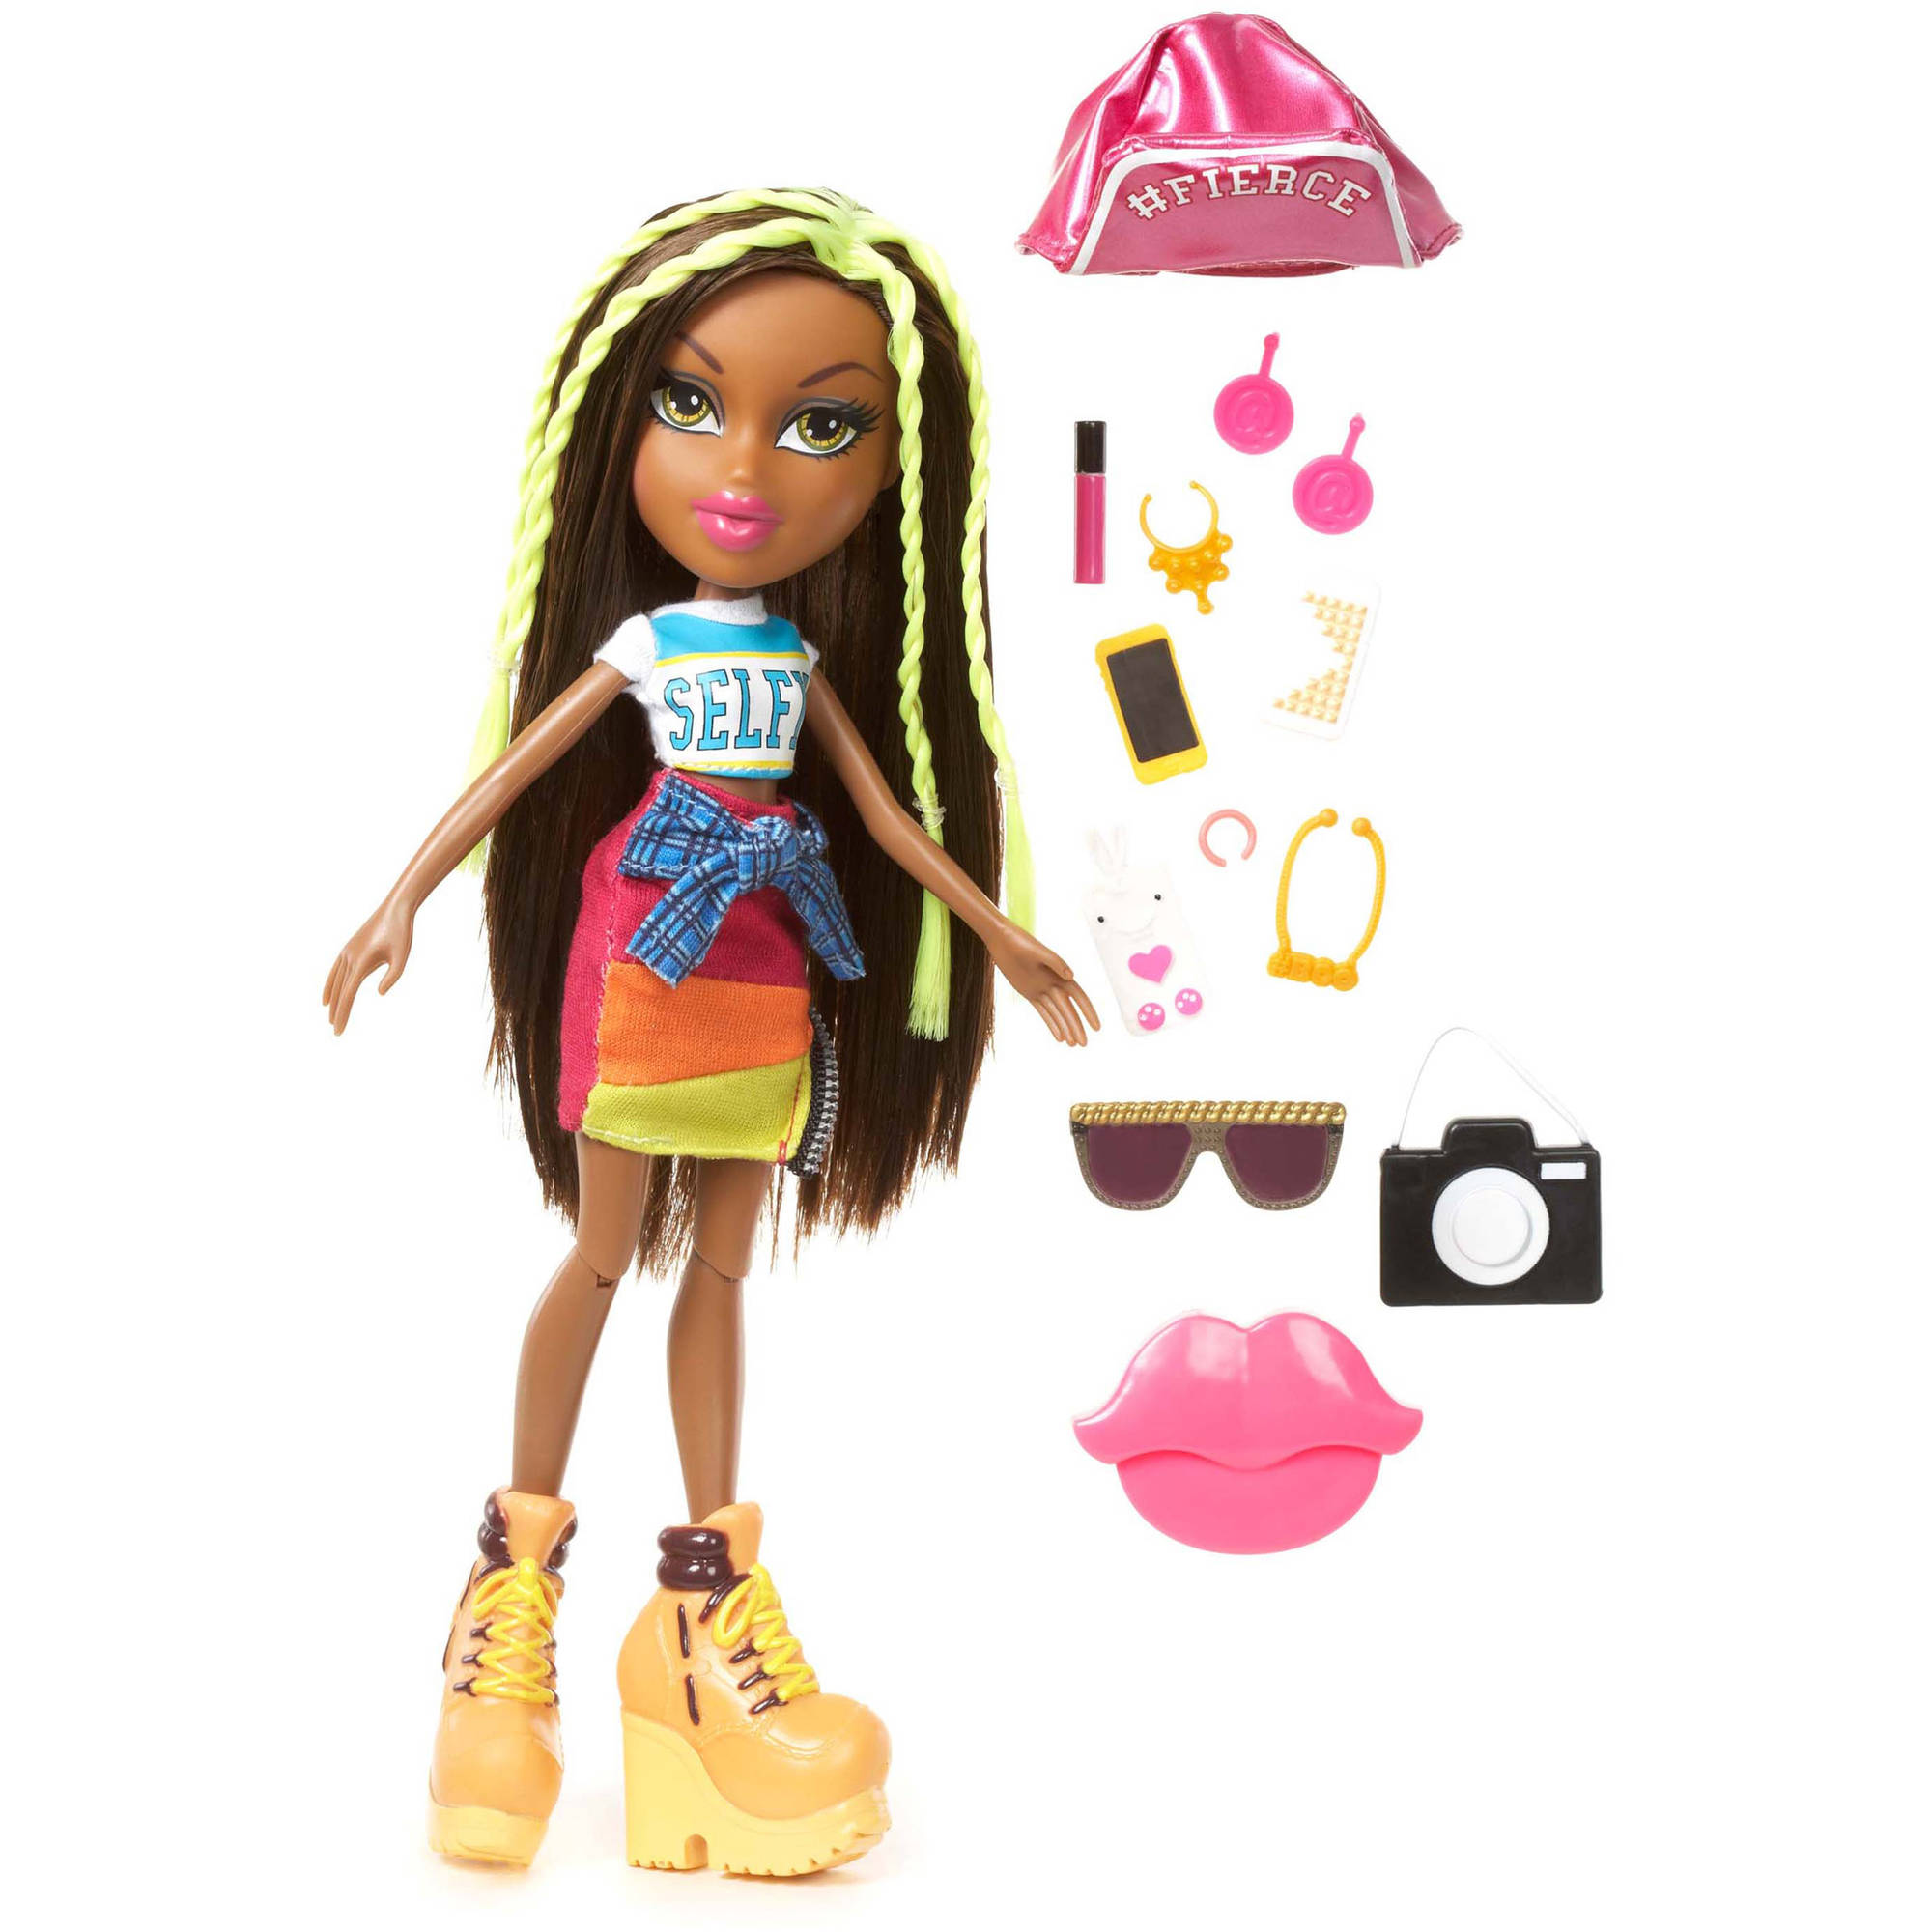 Uncategorized Bratz Doll Images bratz doll sleepover bed walmart com